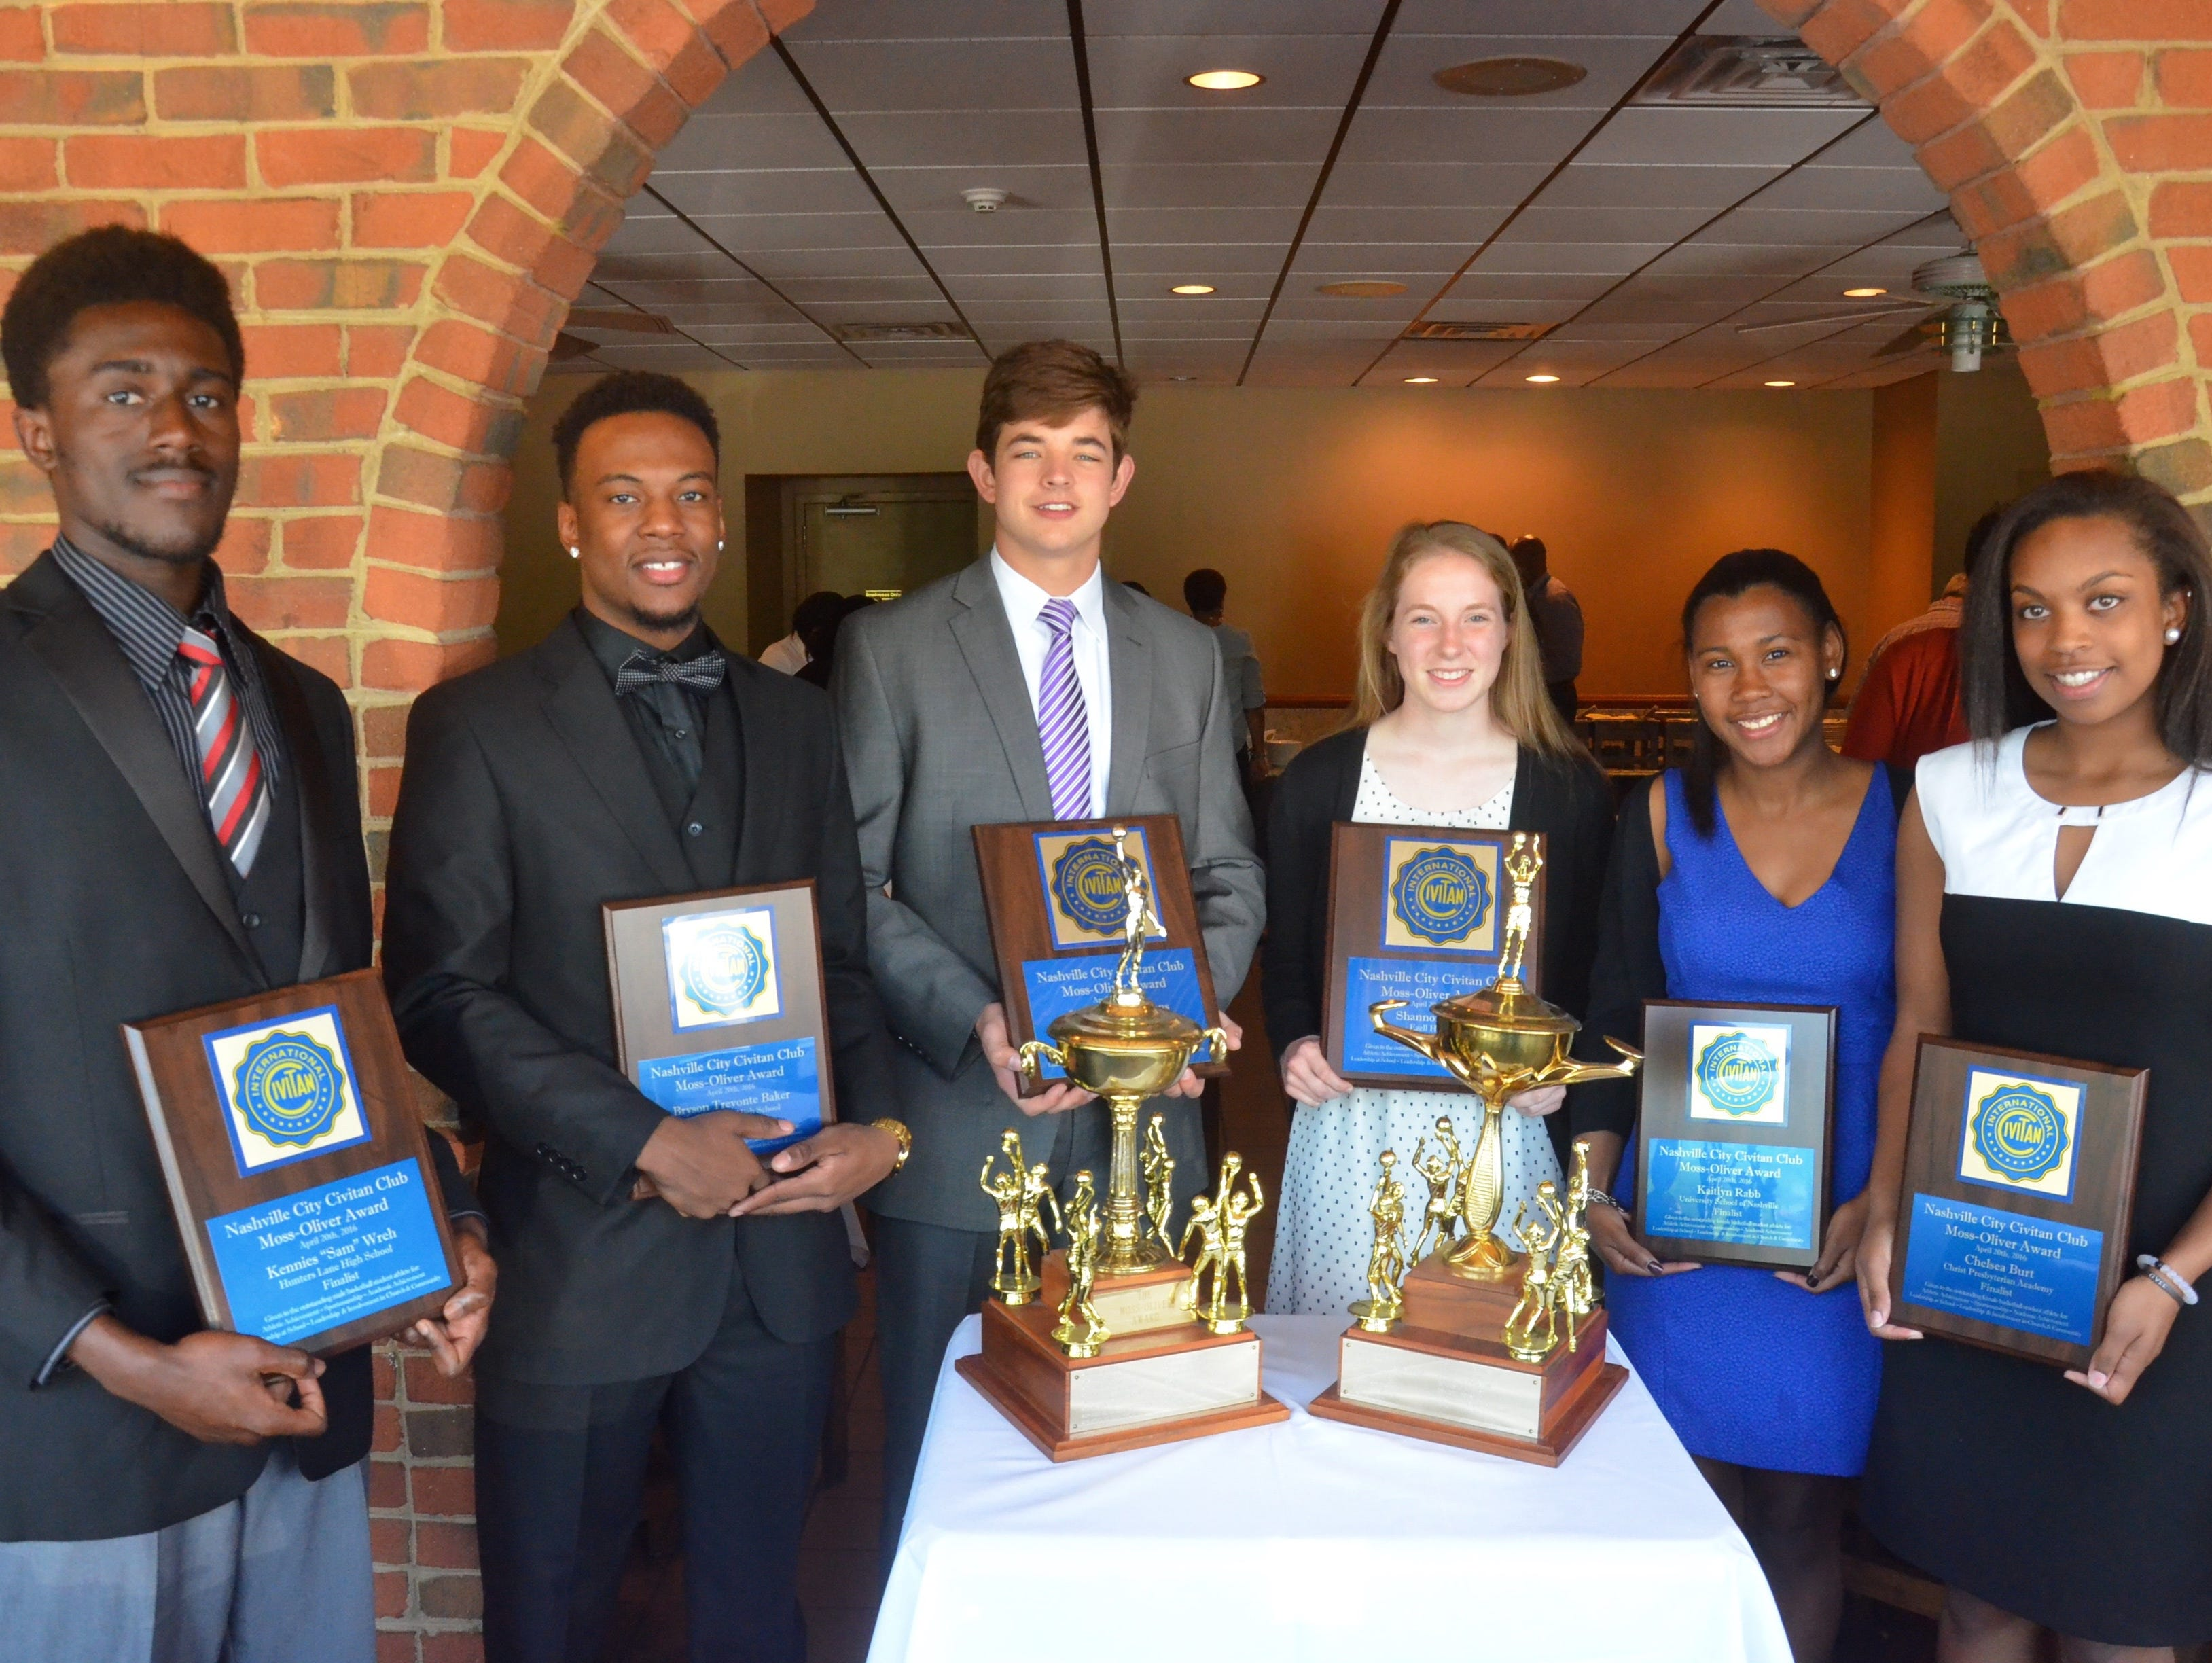 From lef, the 2016 Moss-Oliver Award finalists: Hunters Lane's Sam Wreh, Pearl-Cohn's Bryson Baker, Lipscomb's Clayton Pickens, Ezell-Harding's Shannon Beaty, USN's Kaitlyn Rabb and CPA's Chelsea Burt.